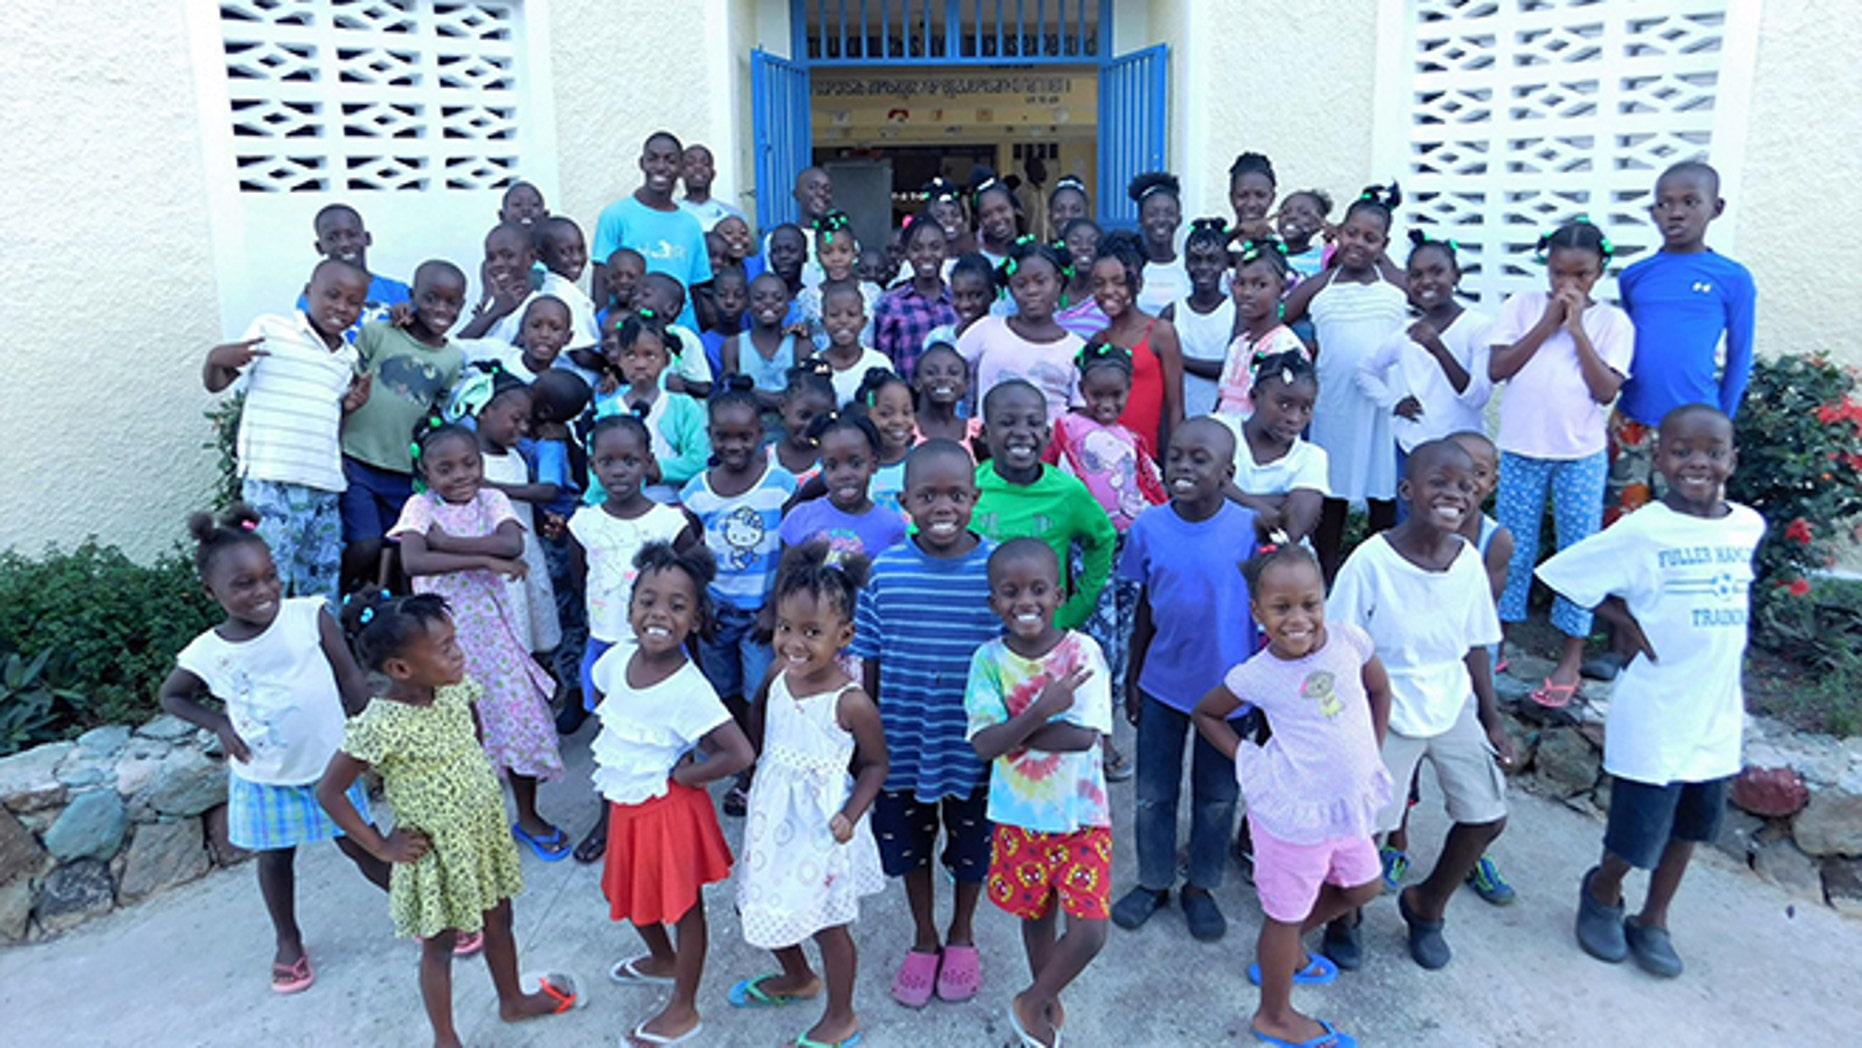 Brit's Home, an orphanage in Haiti.